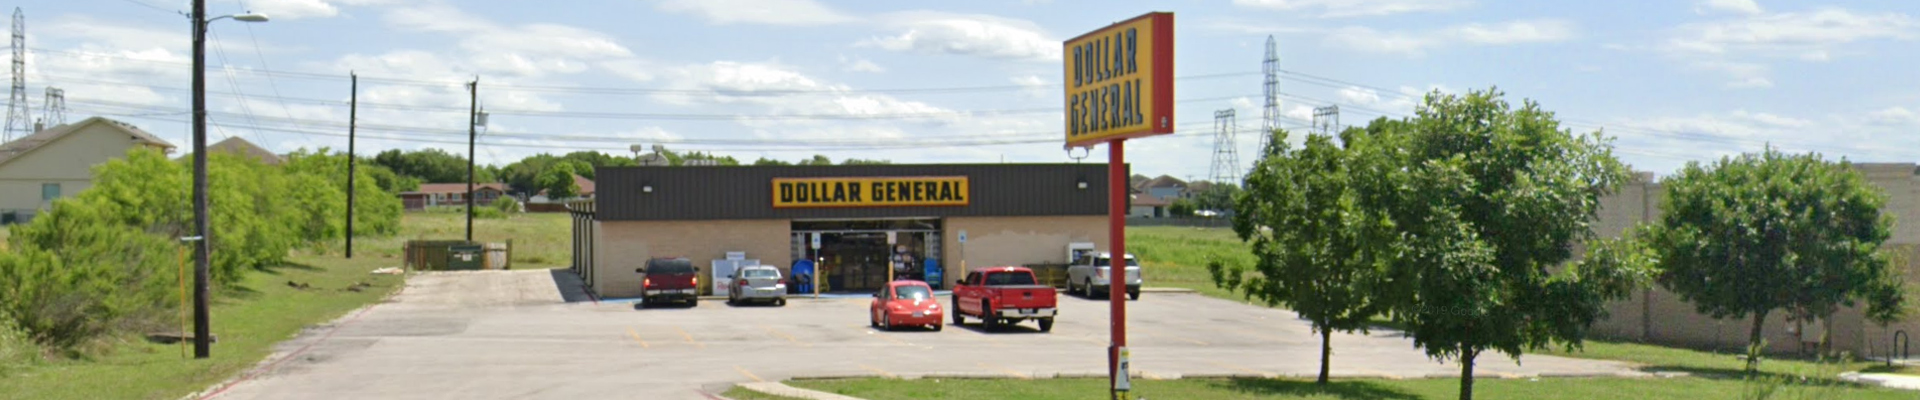 Dollar General (7510) - San Antonio, Texas